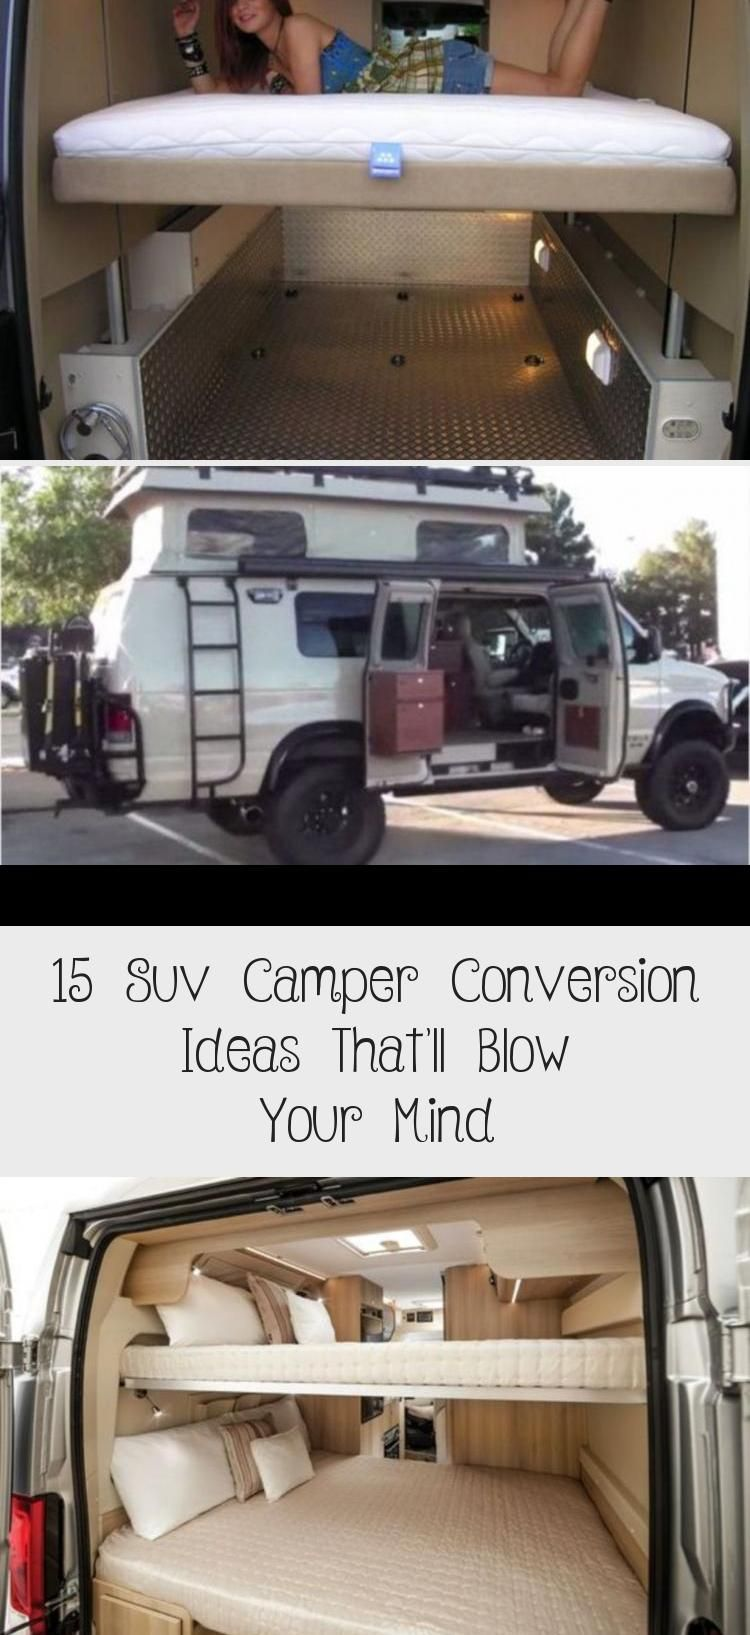 15 SUV Camper Conversion Ideas That'll Blow your Mind - GODIYGO.COM #Fancycars #carsCake #Smallcars #carsDeDisney   You are in the right place about cars dibujos   Here we offer you the most beautiful pictures about the  cars cartoon  you are looking for. When you examine the 15 SUV Camper Conversion Id... #Blow #Camper #cars #cars Accessories #cars Classic #cars De Disney #cars For Girls #cars For Teens #cars Ideas #cars Jeep #cars Luxury #cars Vintage #Conversion #Ideas #mind #Suv #Thatll